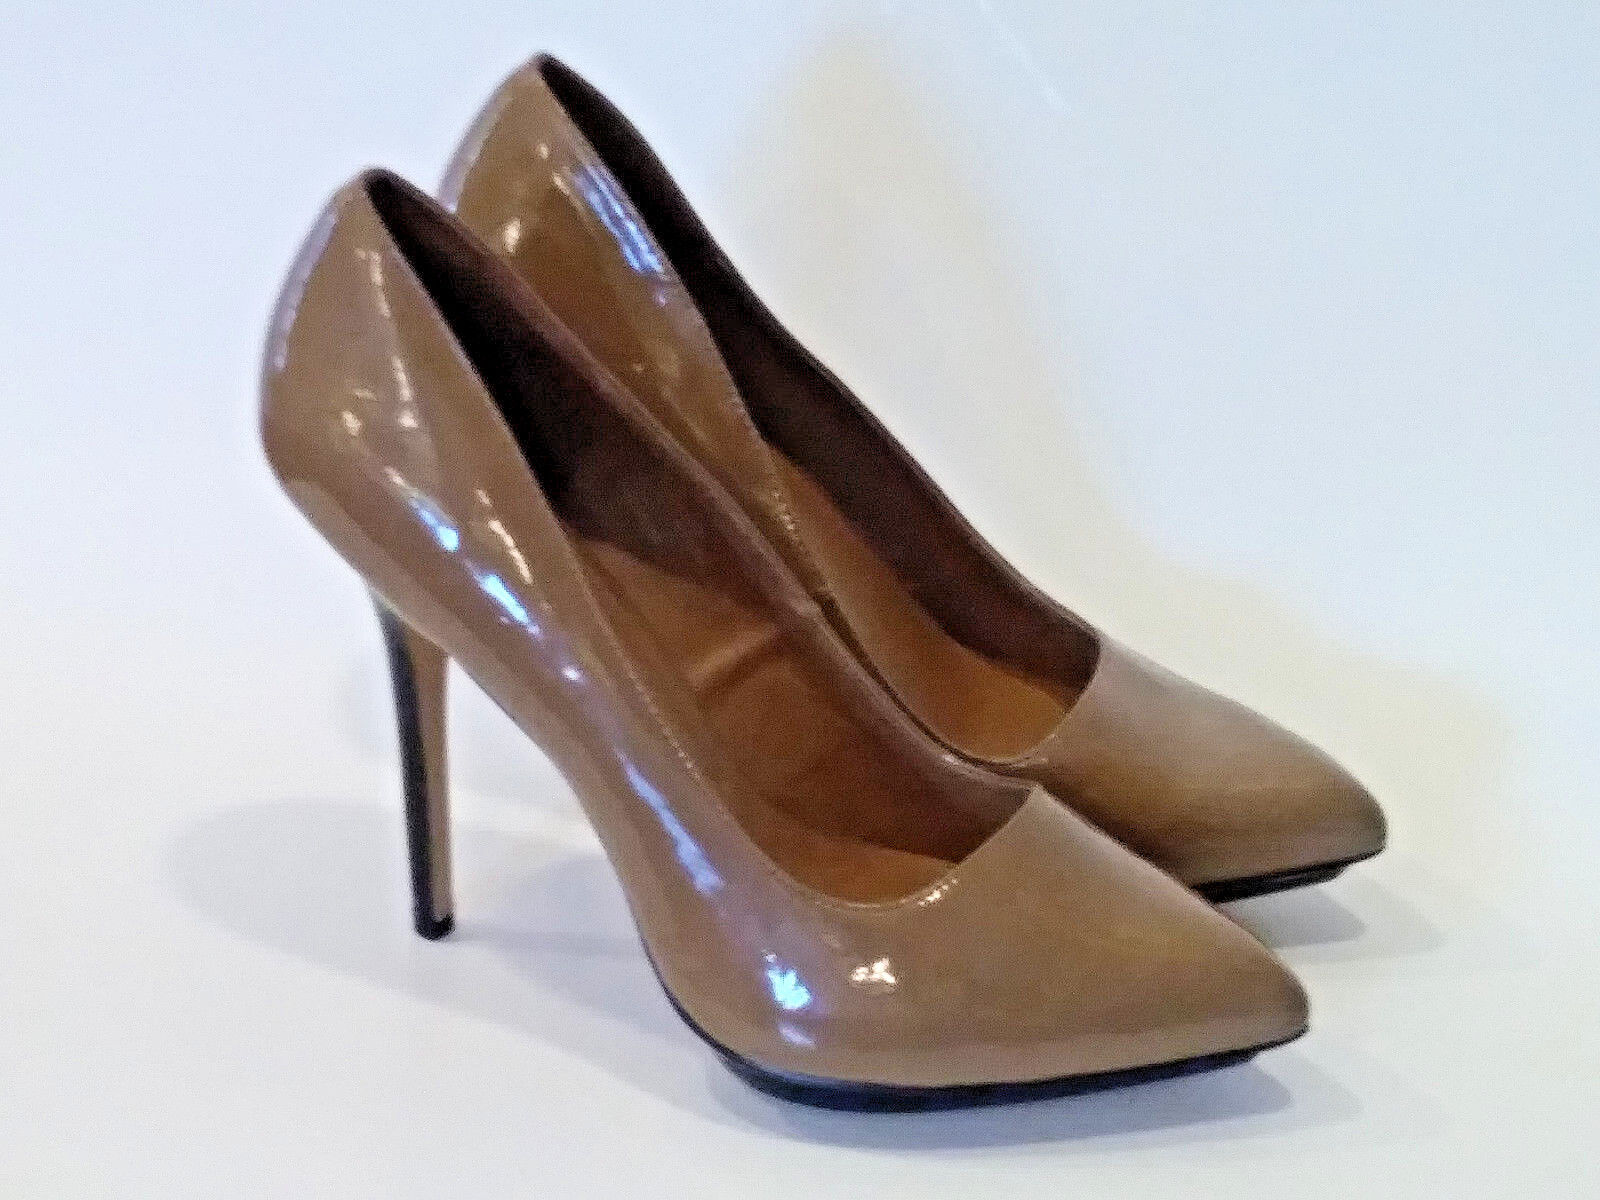 JS BY JESSICA SIMPSON  Tan Black Point Toe Stiletto Heels EXCELLENT